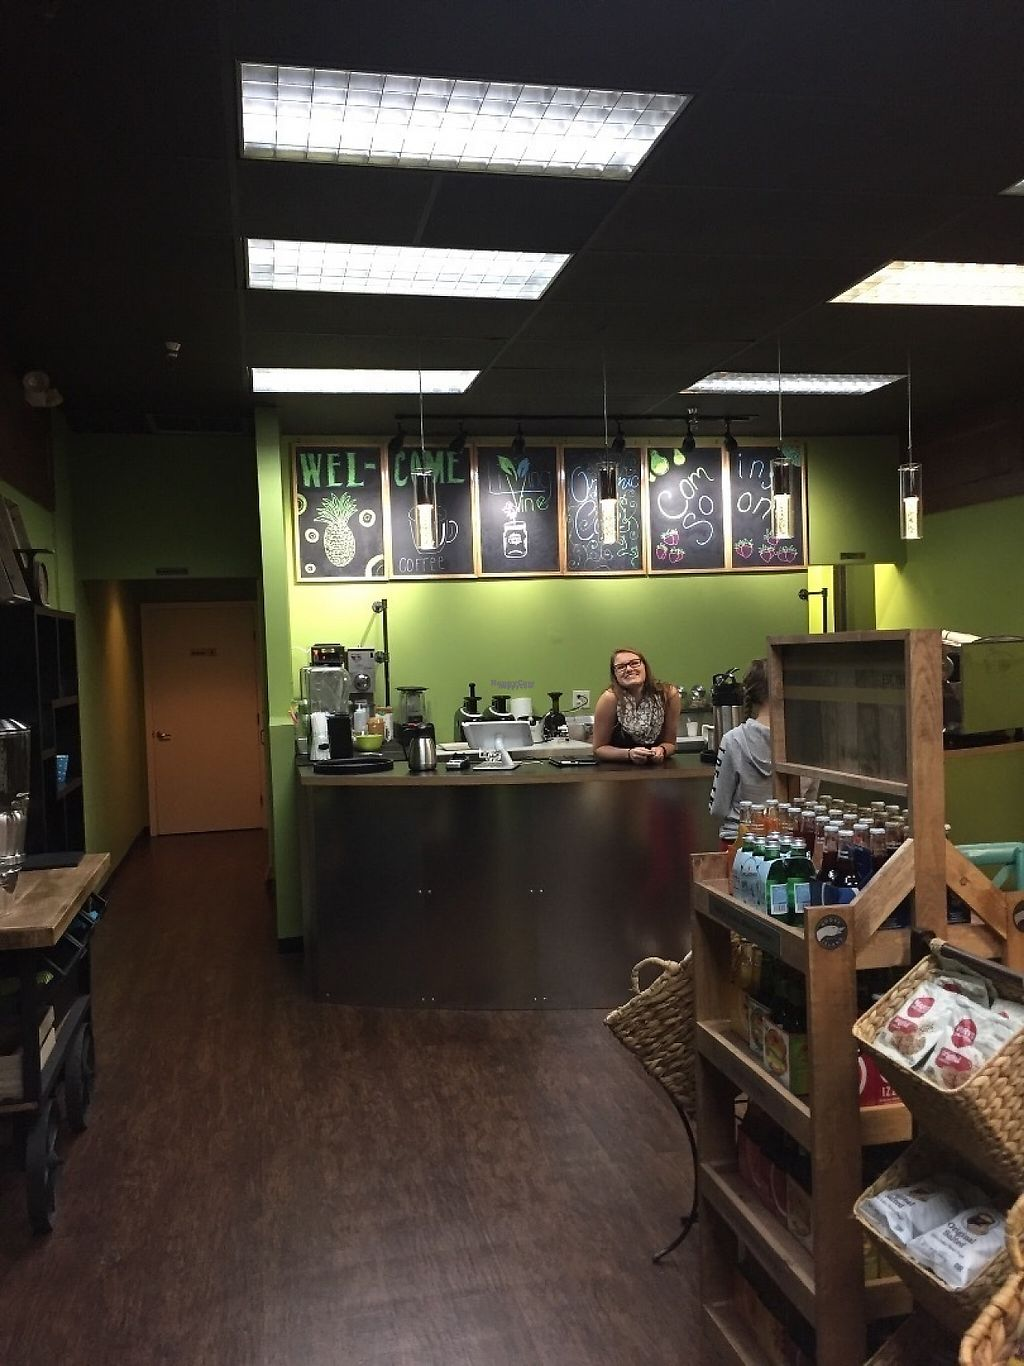 """Photo of Living Vine Organic Cafe  by <a href=""""/members/profile/JamesRoark"""">JamesRoark</a> <br/>When you enter, you'll discover a warm feeling of soft colors leading to the front counter where a knowledgeable and smiling  face will greet you to take your order.  <br/> December 8, 2016  - <a href='/contact/abuse/image/83720/198135'>Report</a>"""